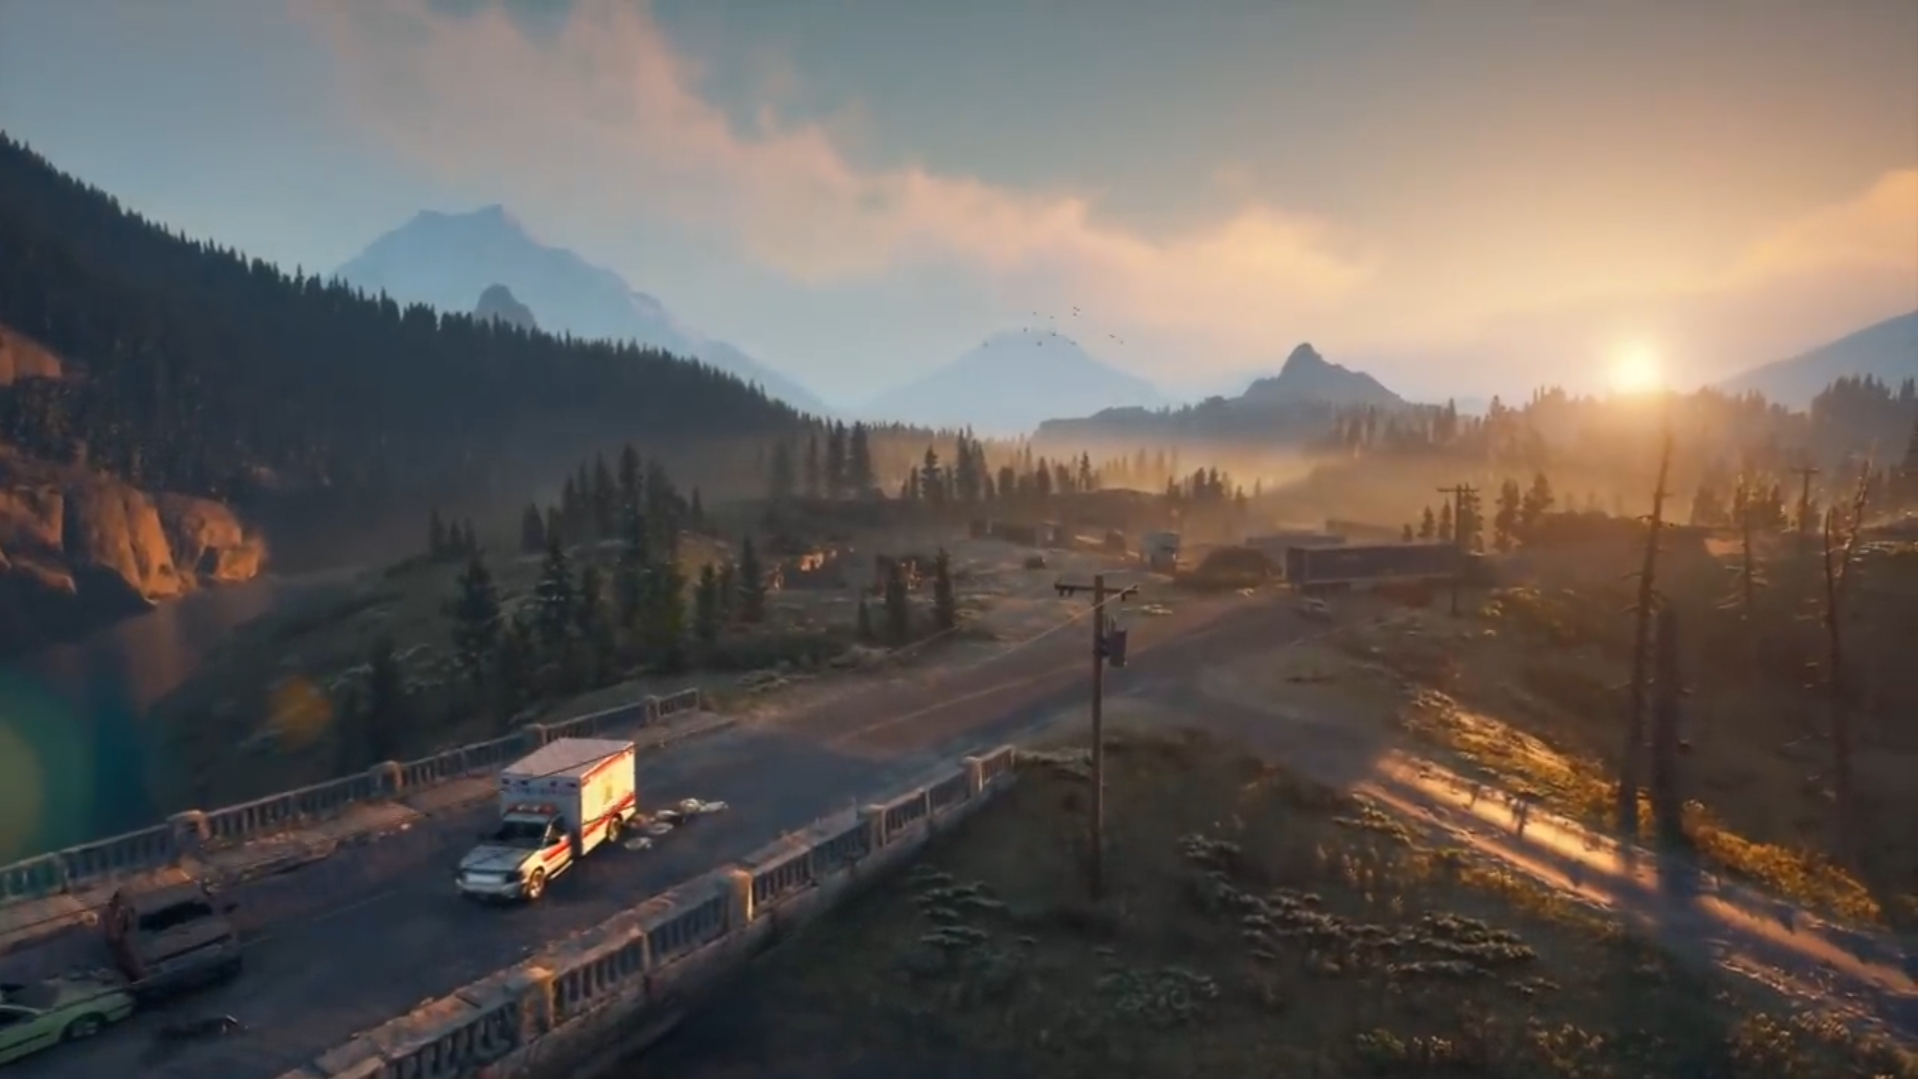 Beautiful Game Landscape from Days Gone